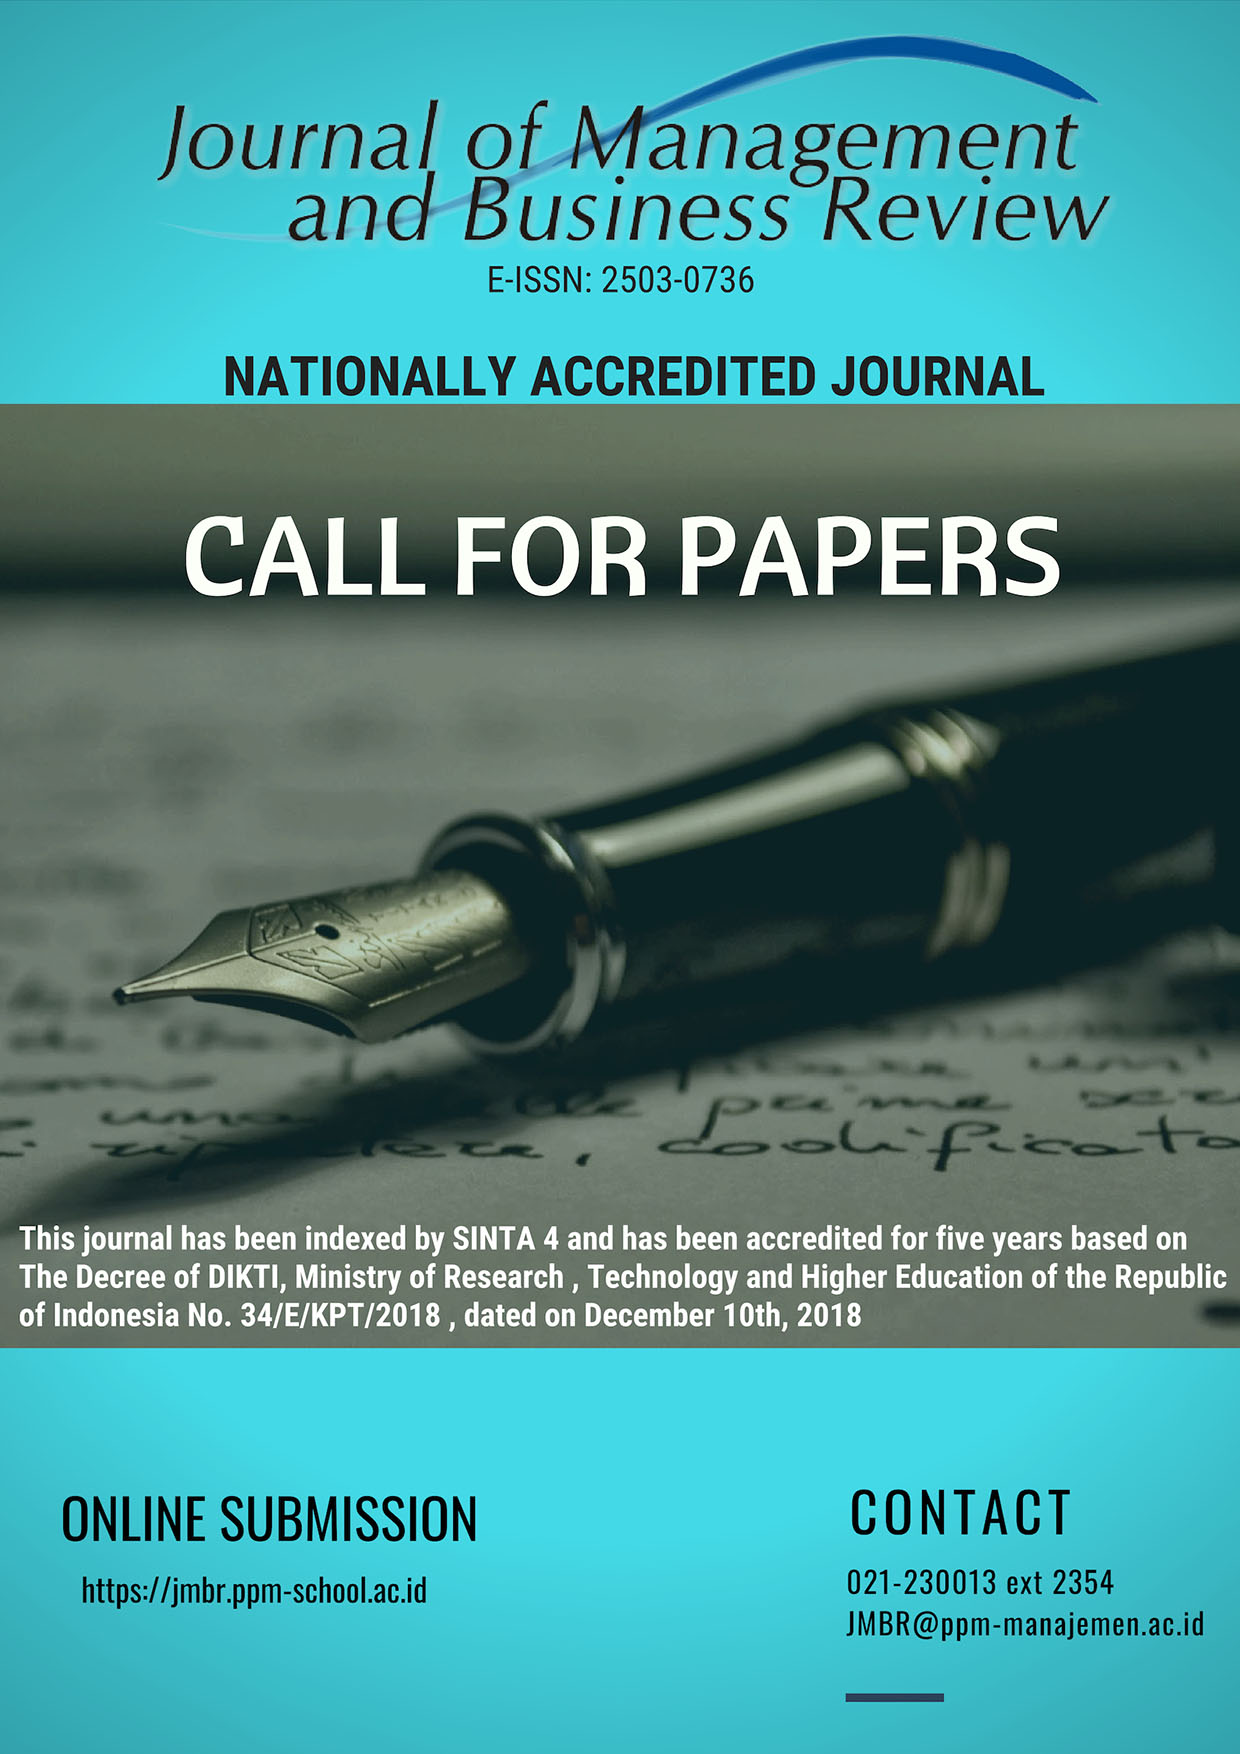 JOURNAL OF MANAGEMENT AND BUSINESS REVIEW (JMBR)